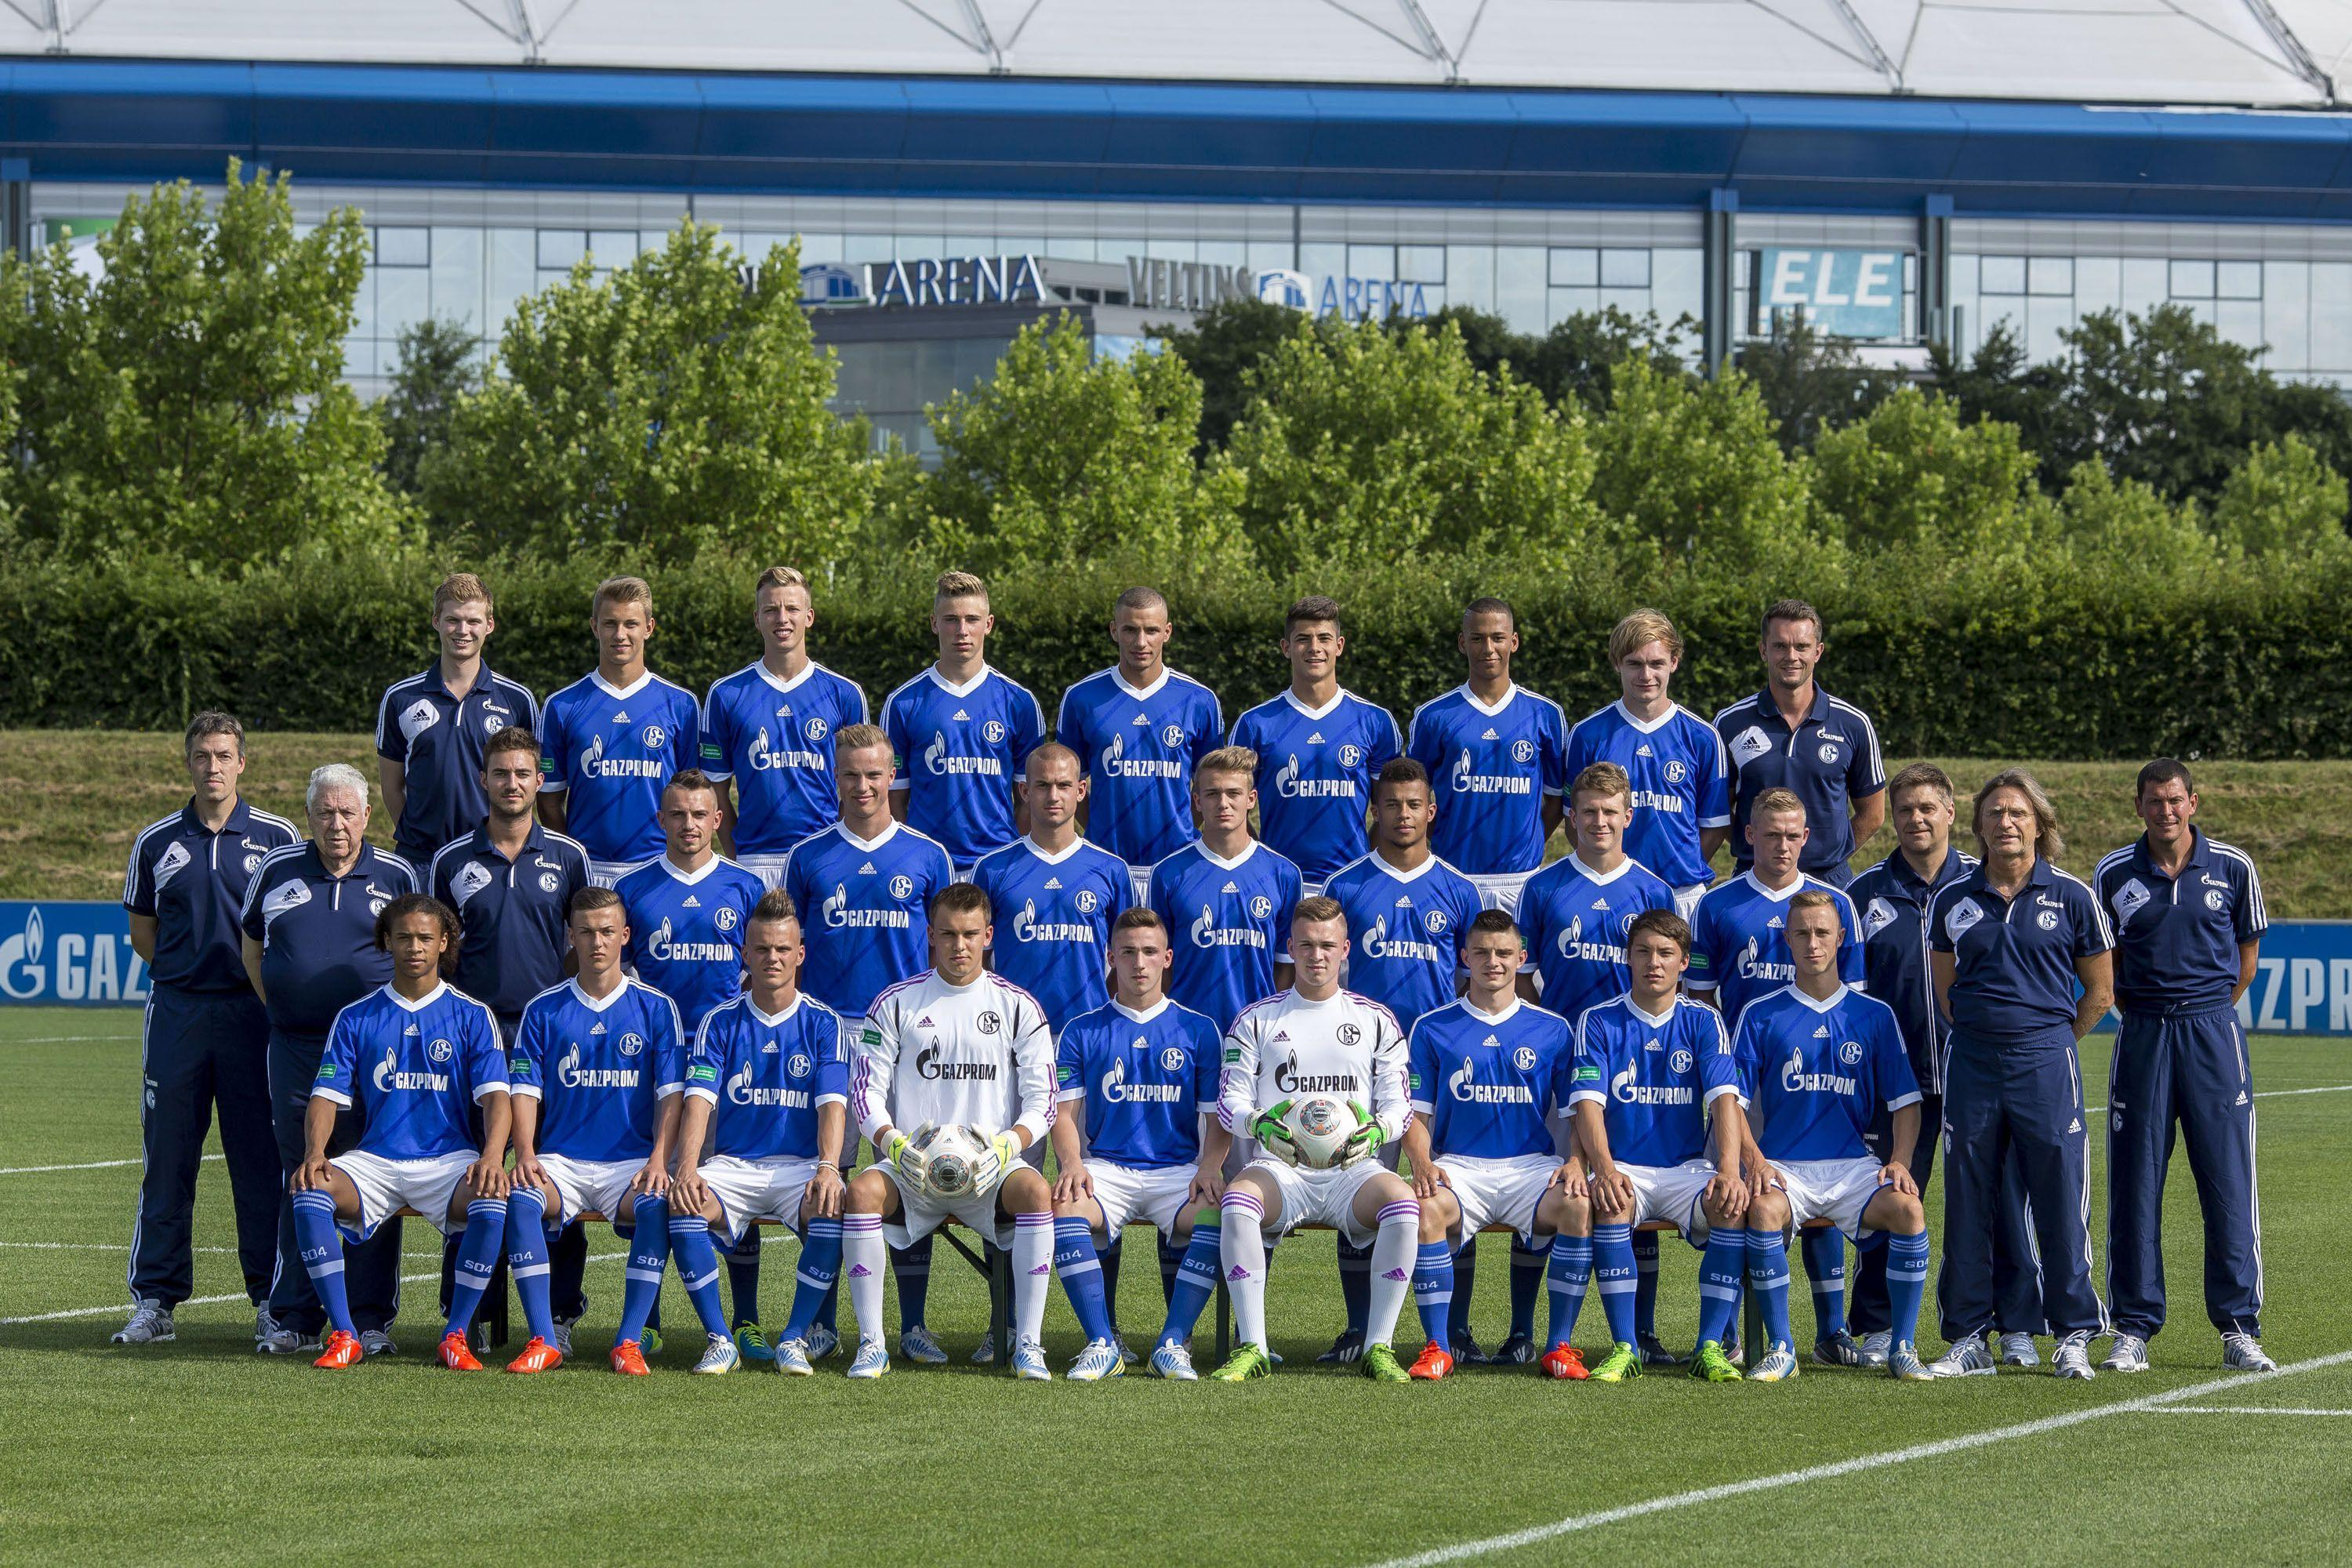 Schalke 04 2013 wallpapers and image